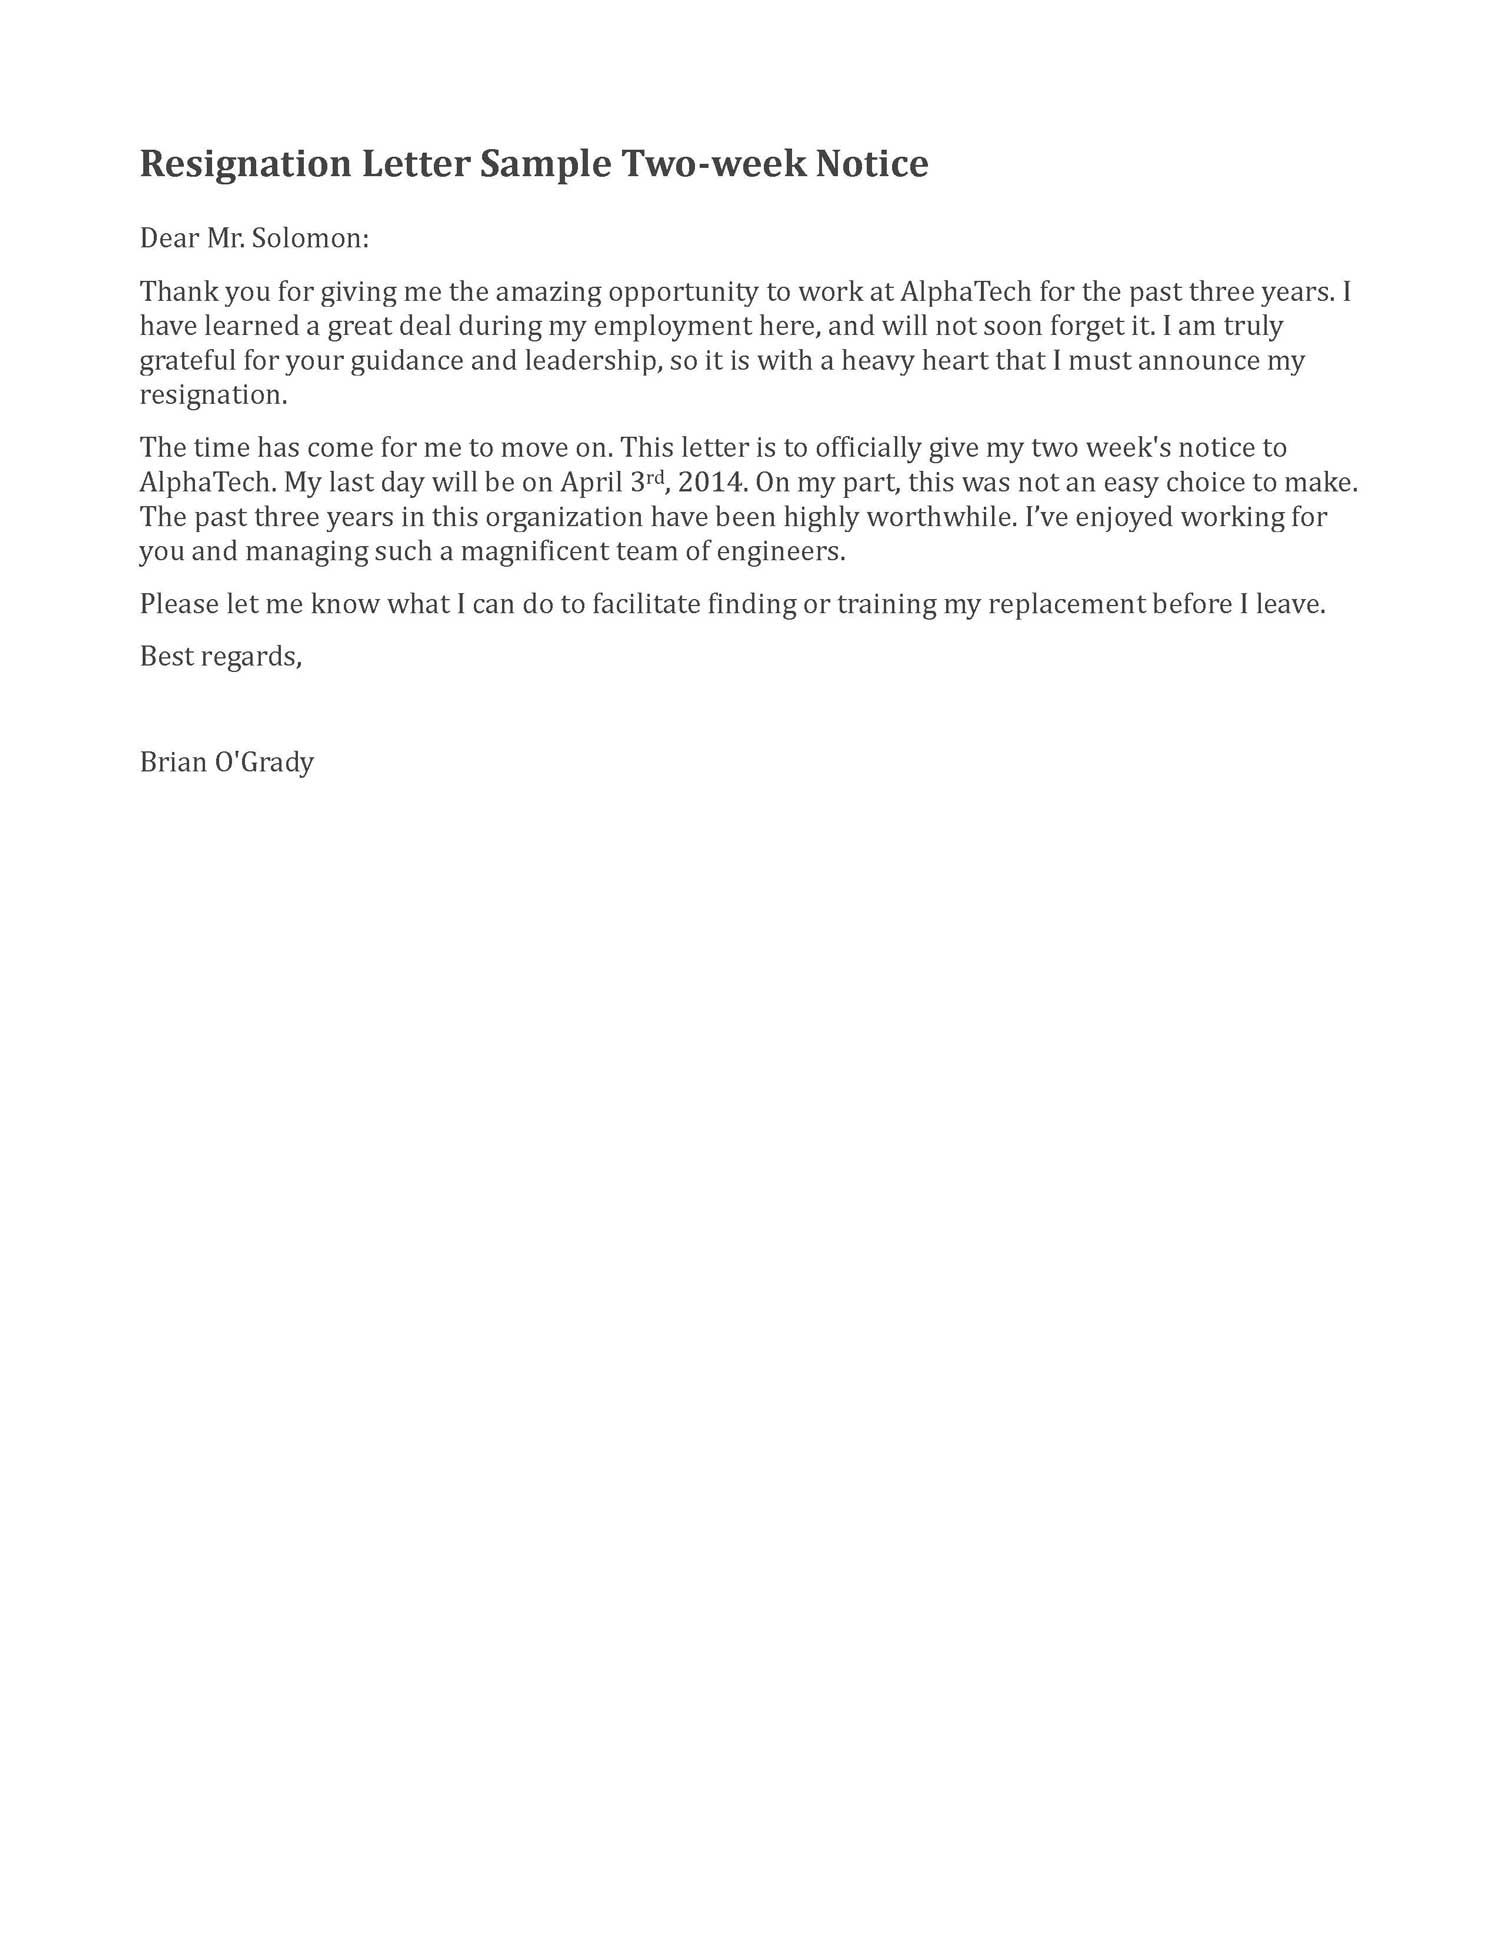 Resignation Letter Sample 2 Weeks Notice